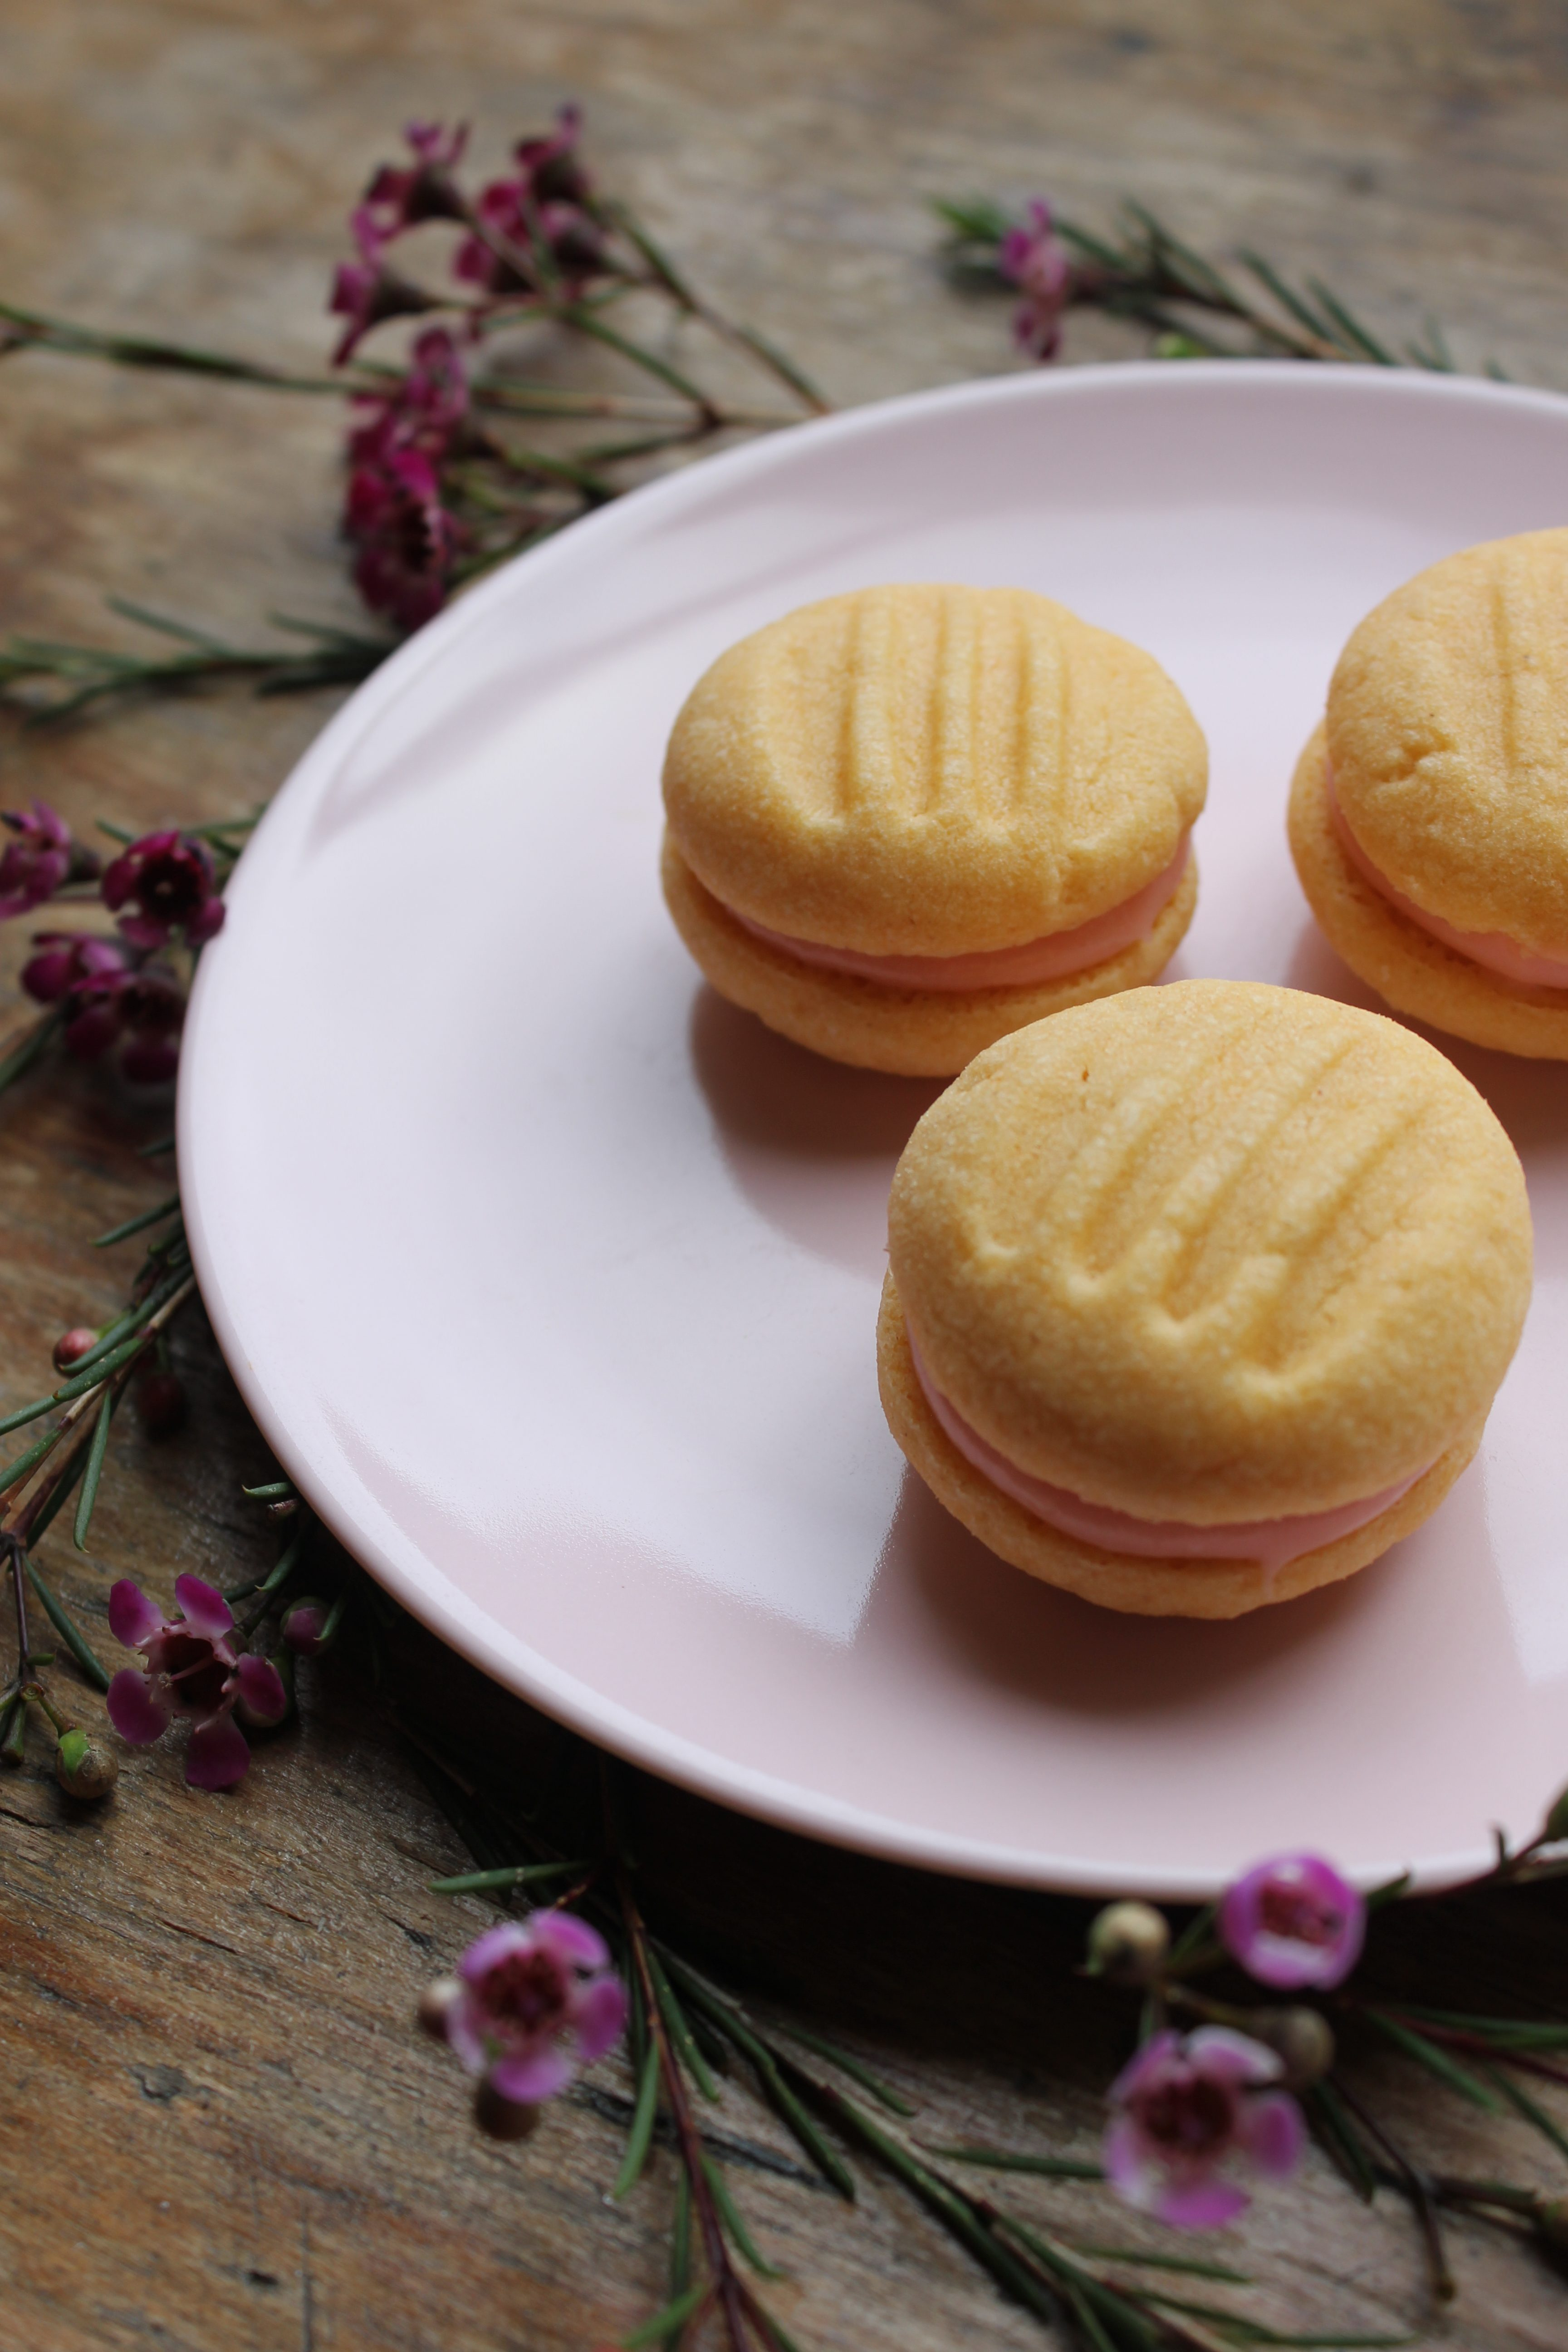 Custard Yo-yos with Roasted Rhubarb Icing